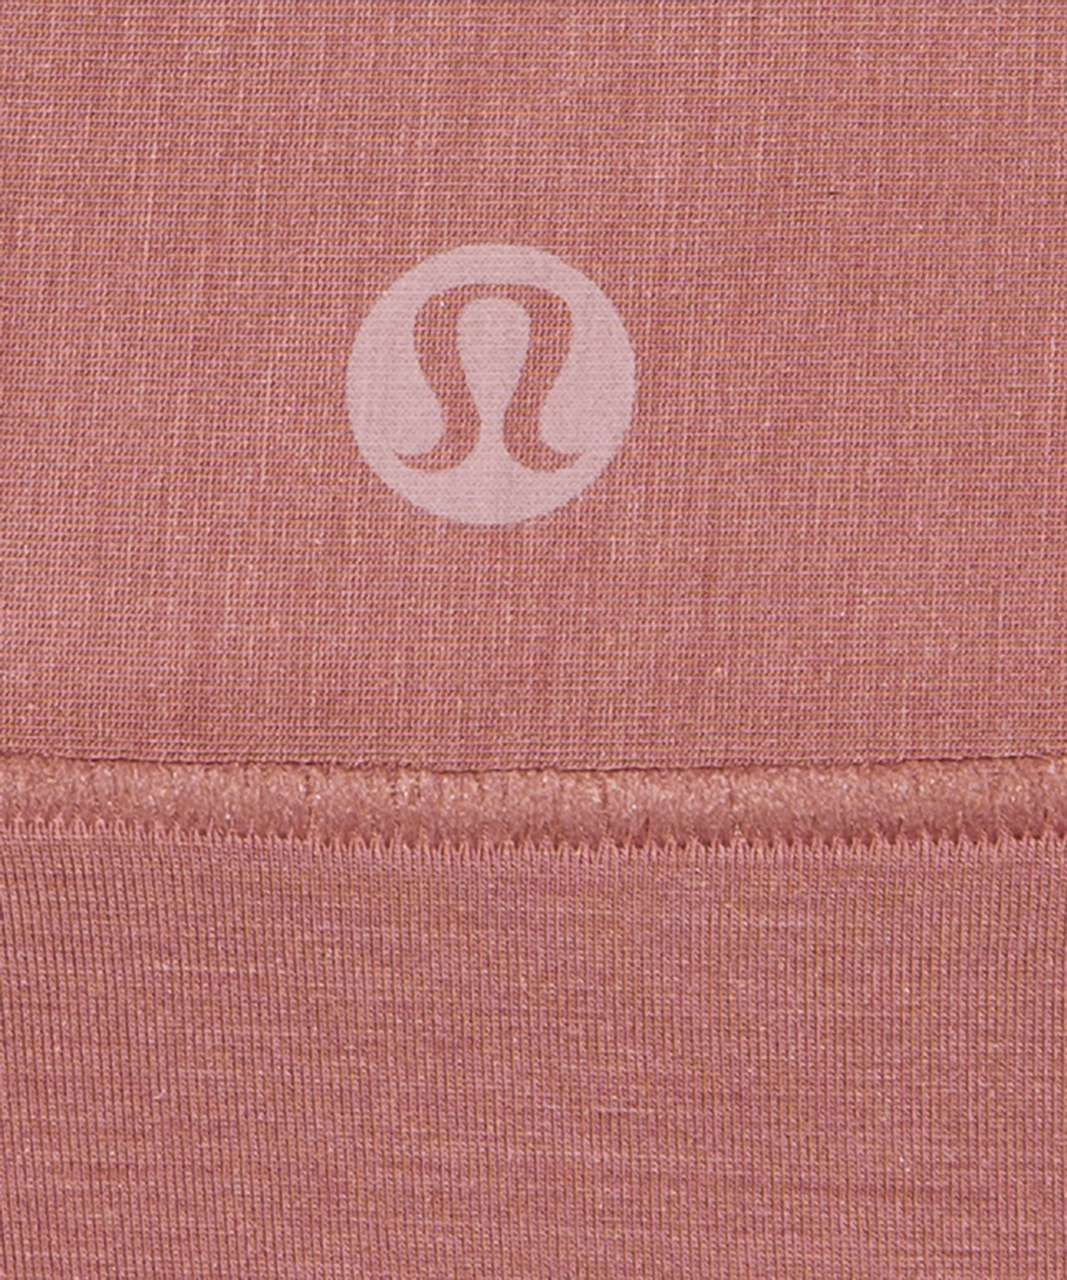 Lululemon UnderEase Mid Rise Thong Underwear 3 Pack - Ocean Air / Spiced Chai / Gold Spice